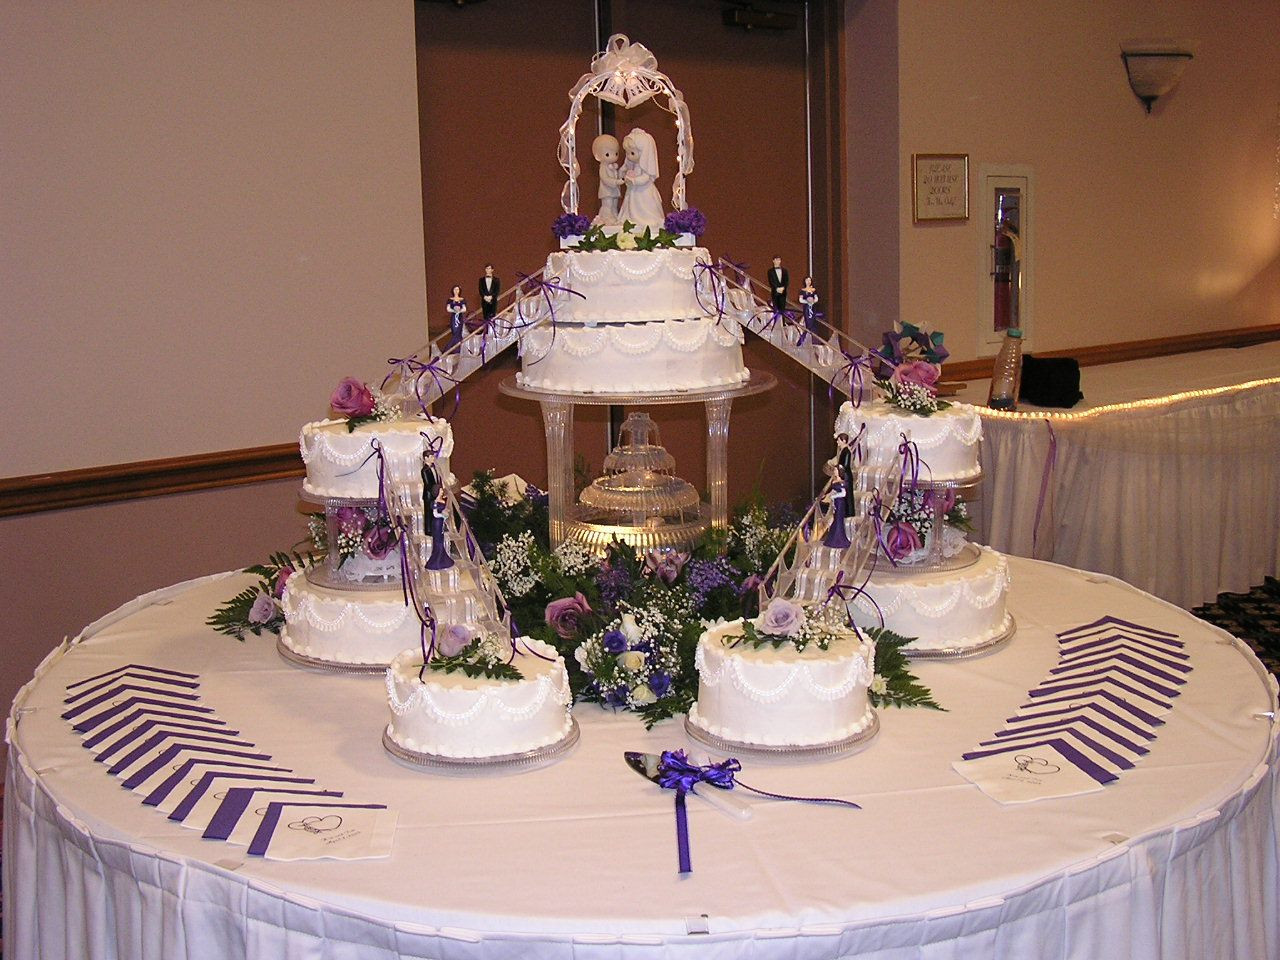 Wedding Cakes With Fountain And Stairs  Wedding Cakes with Fountains